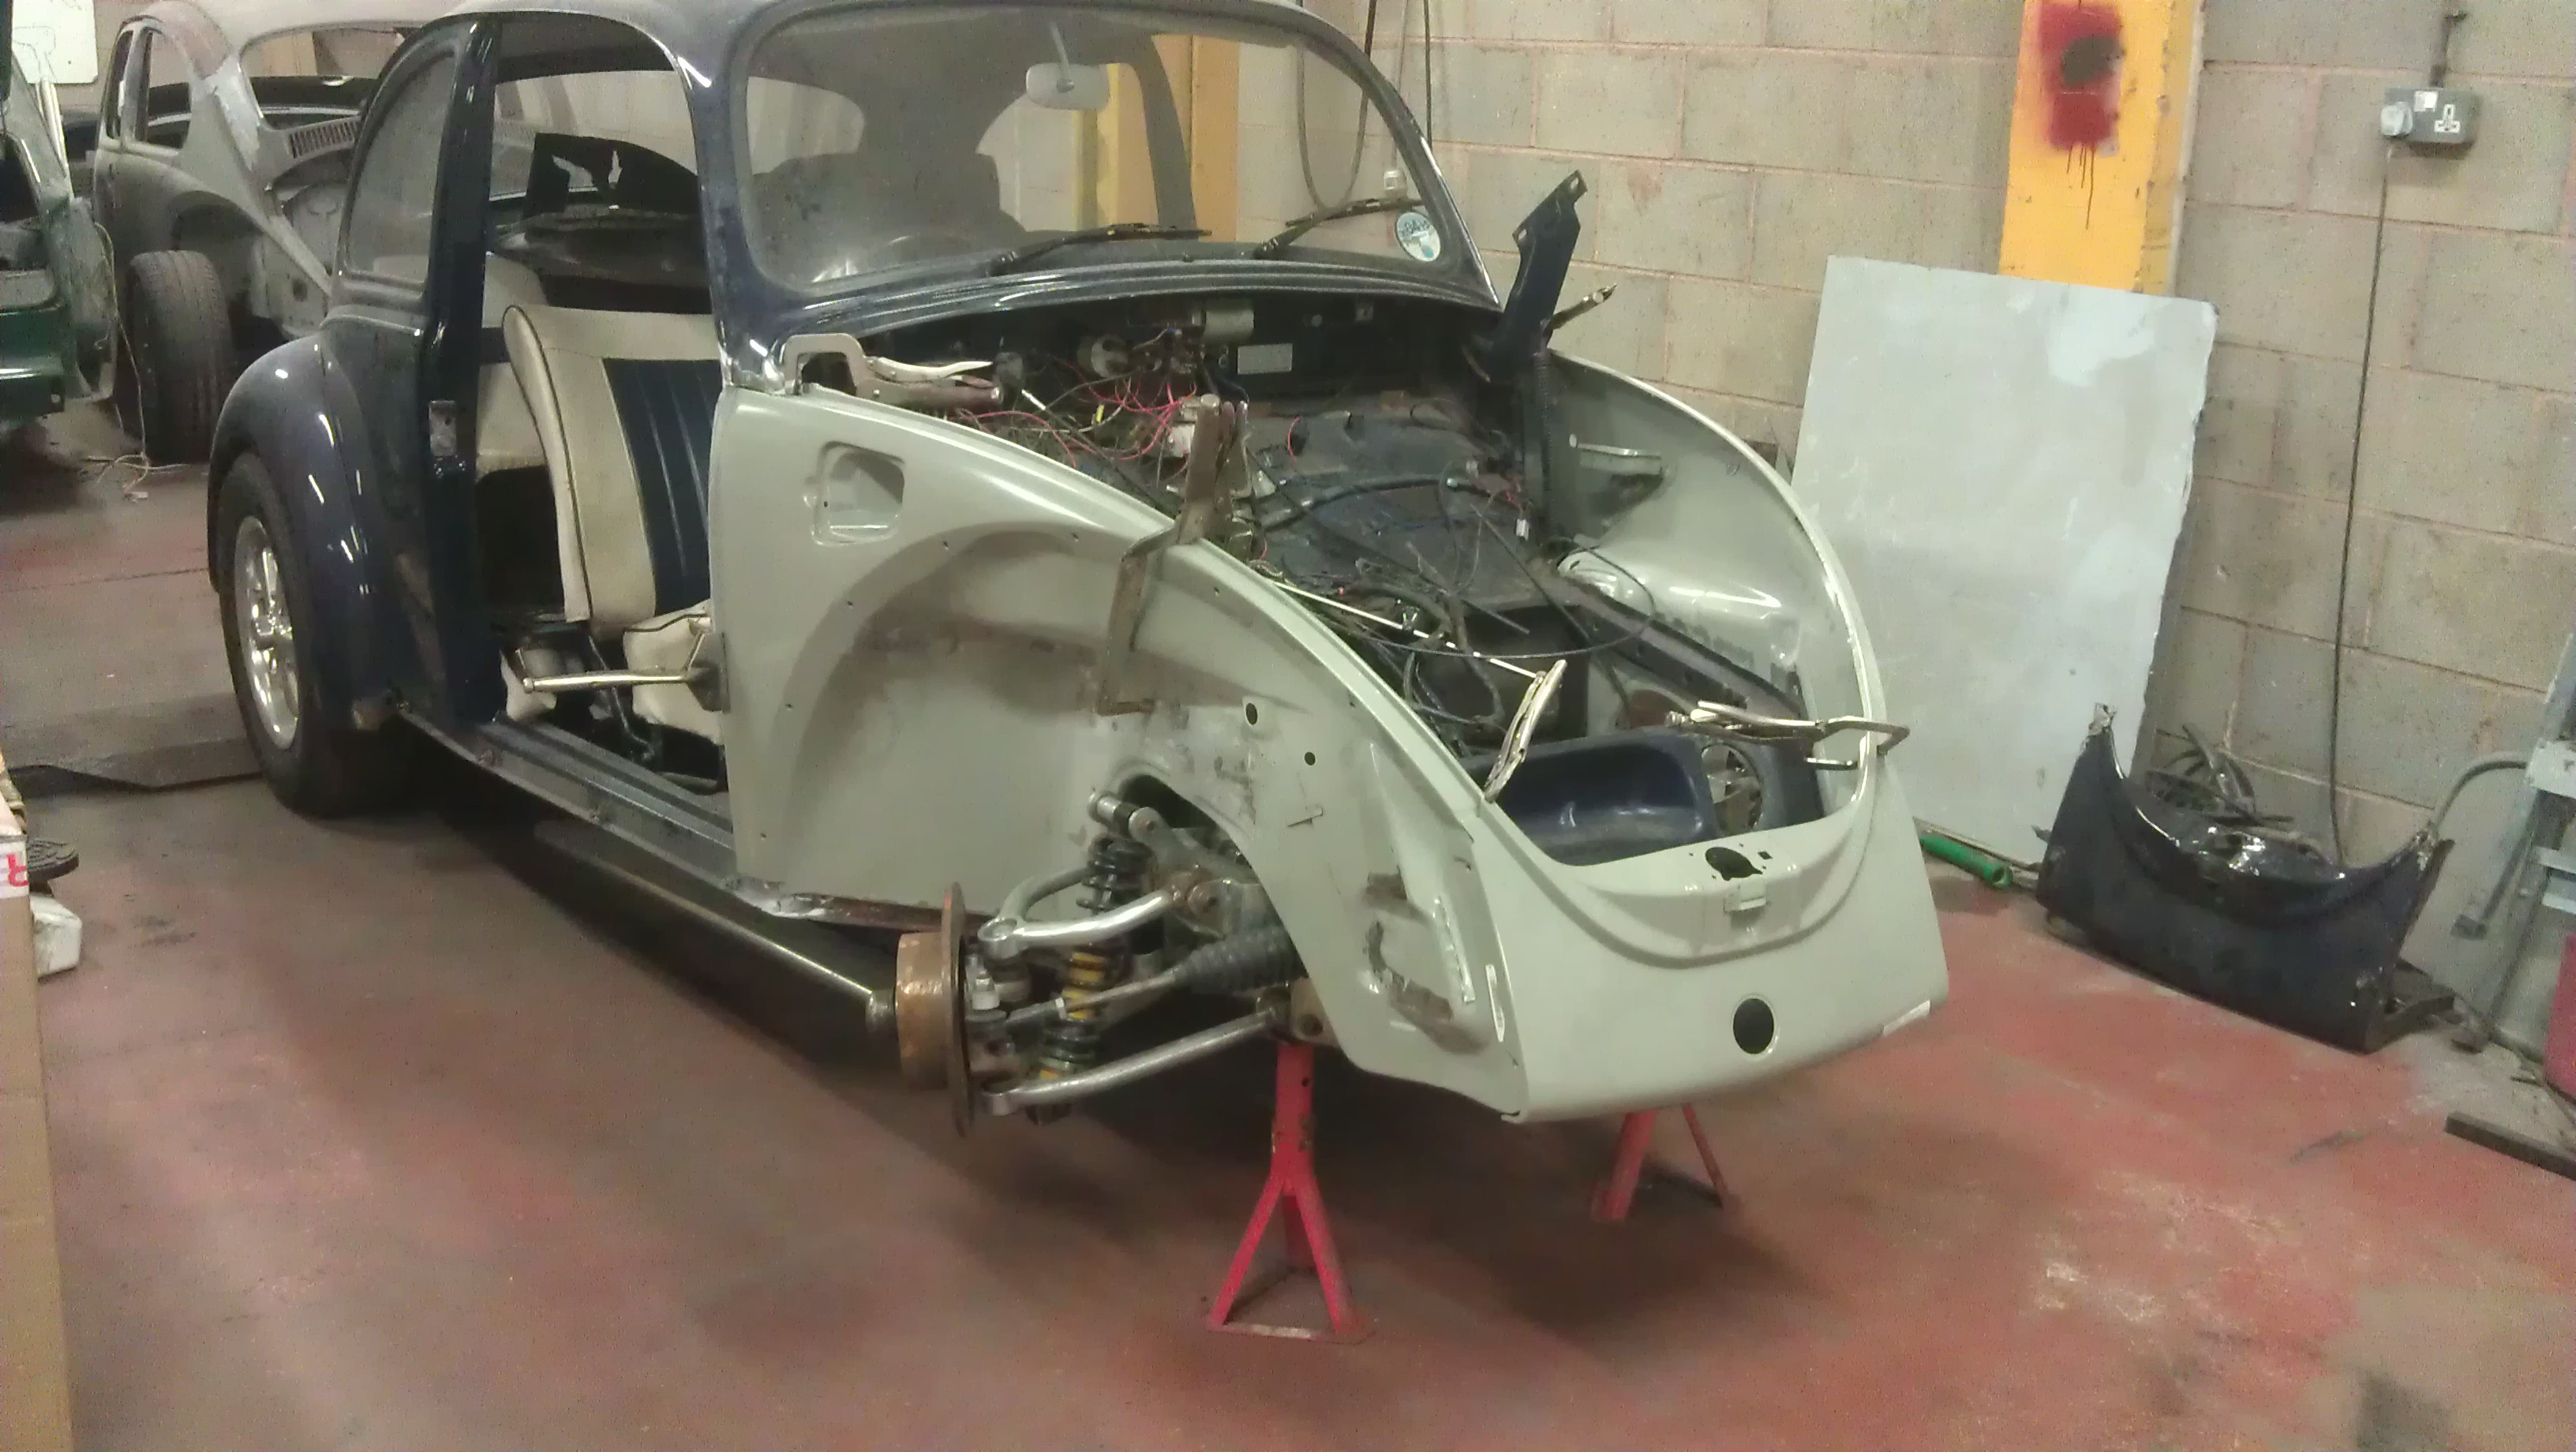 Genuine VW front quarters and valance were used. Lining the new parts up